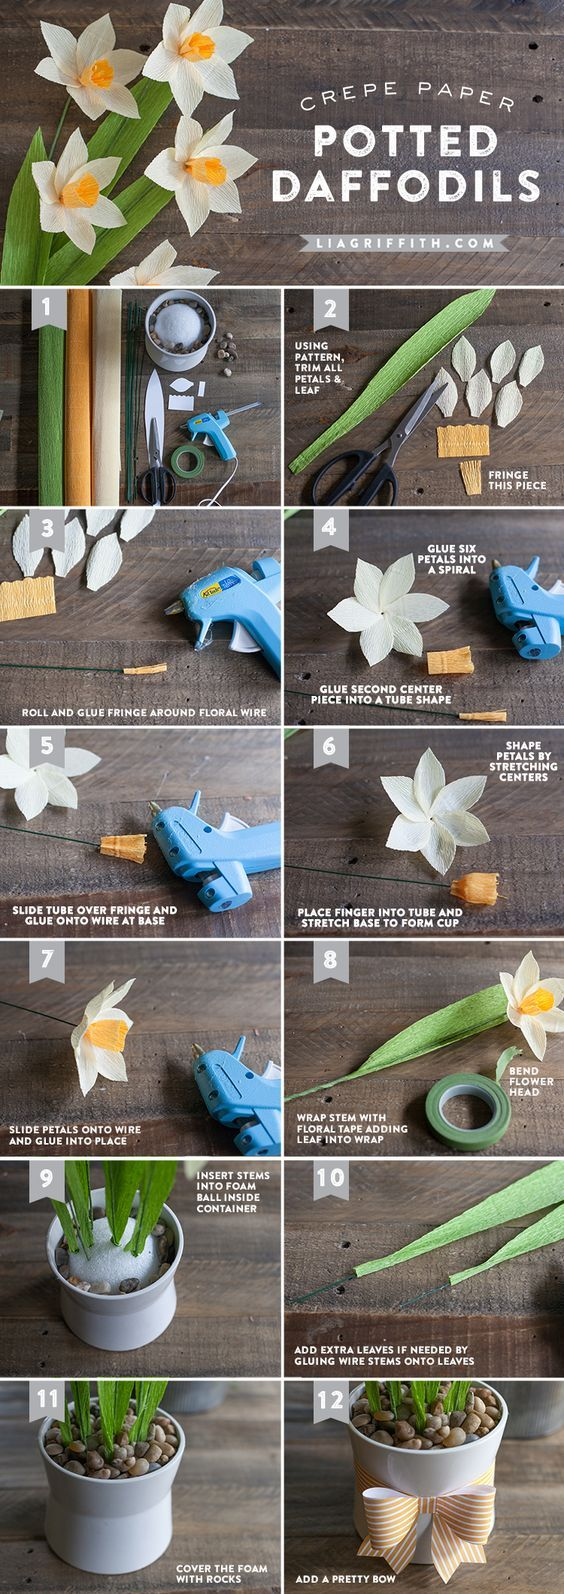 best inspiración diy y upcycling images on pinterest